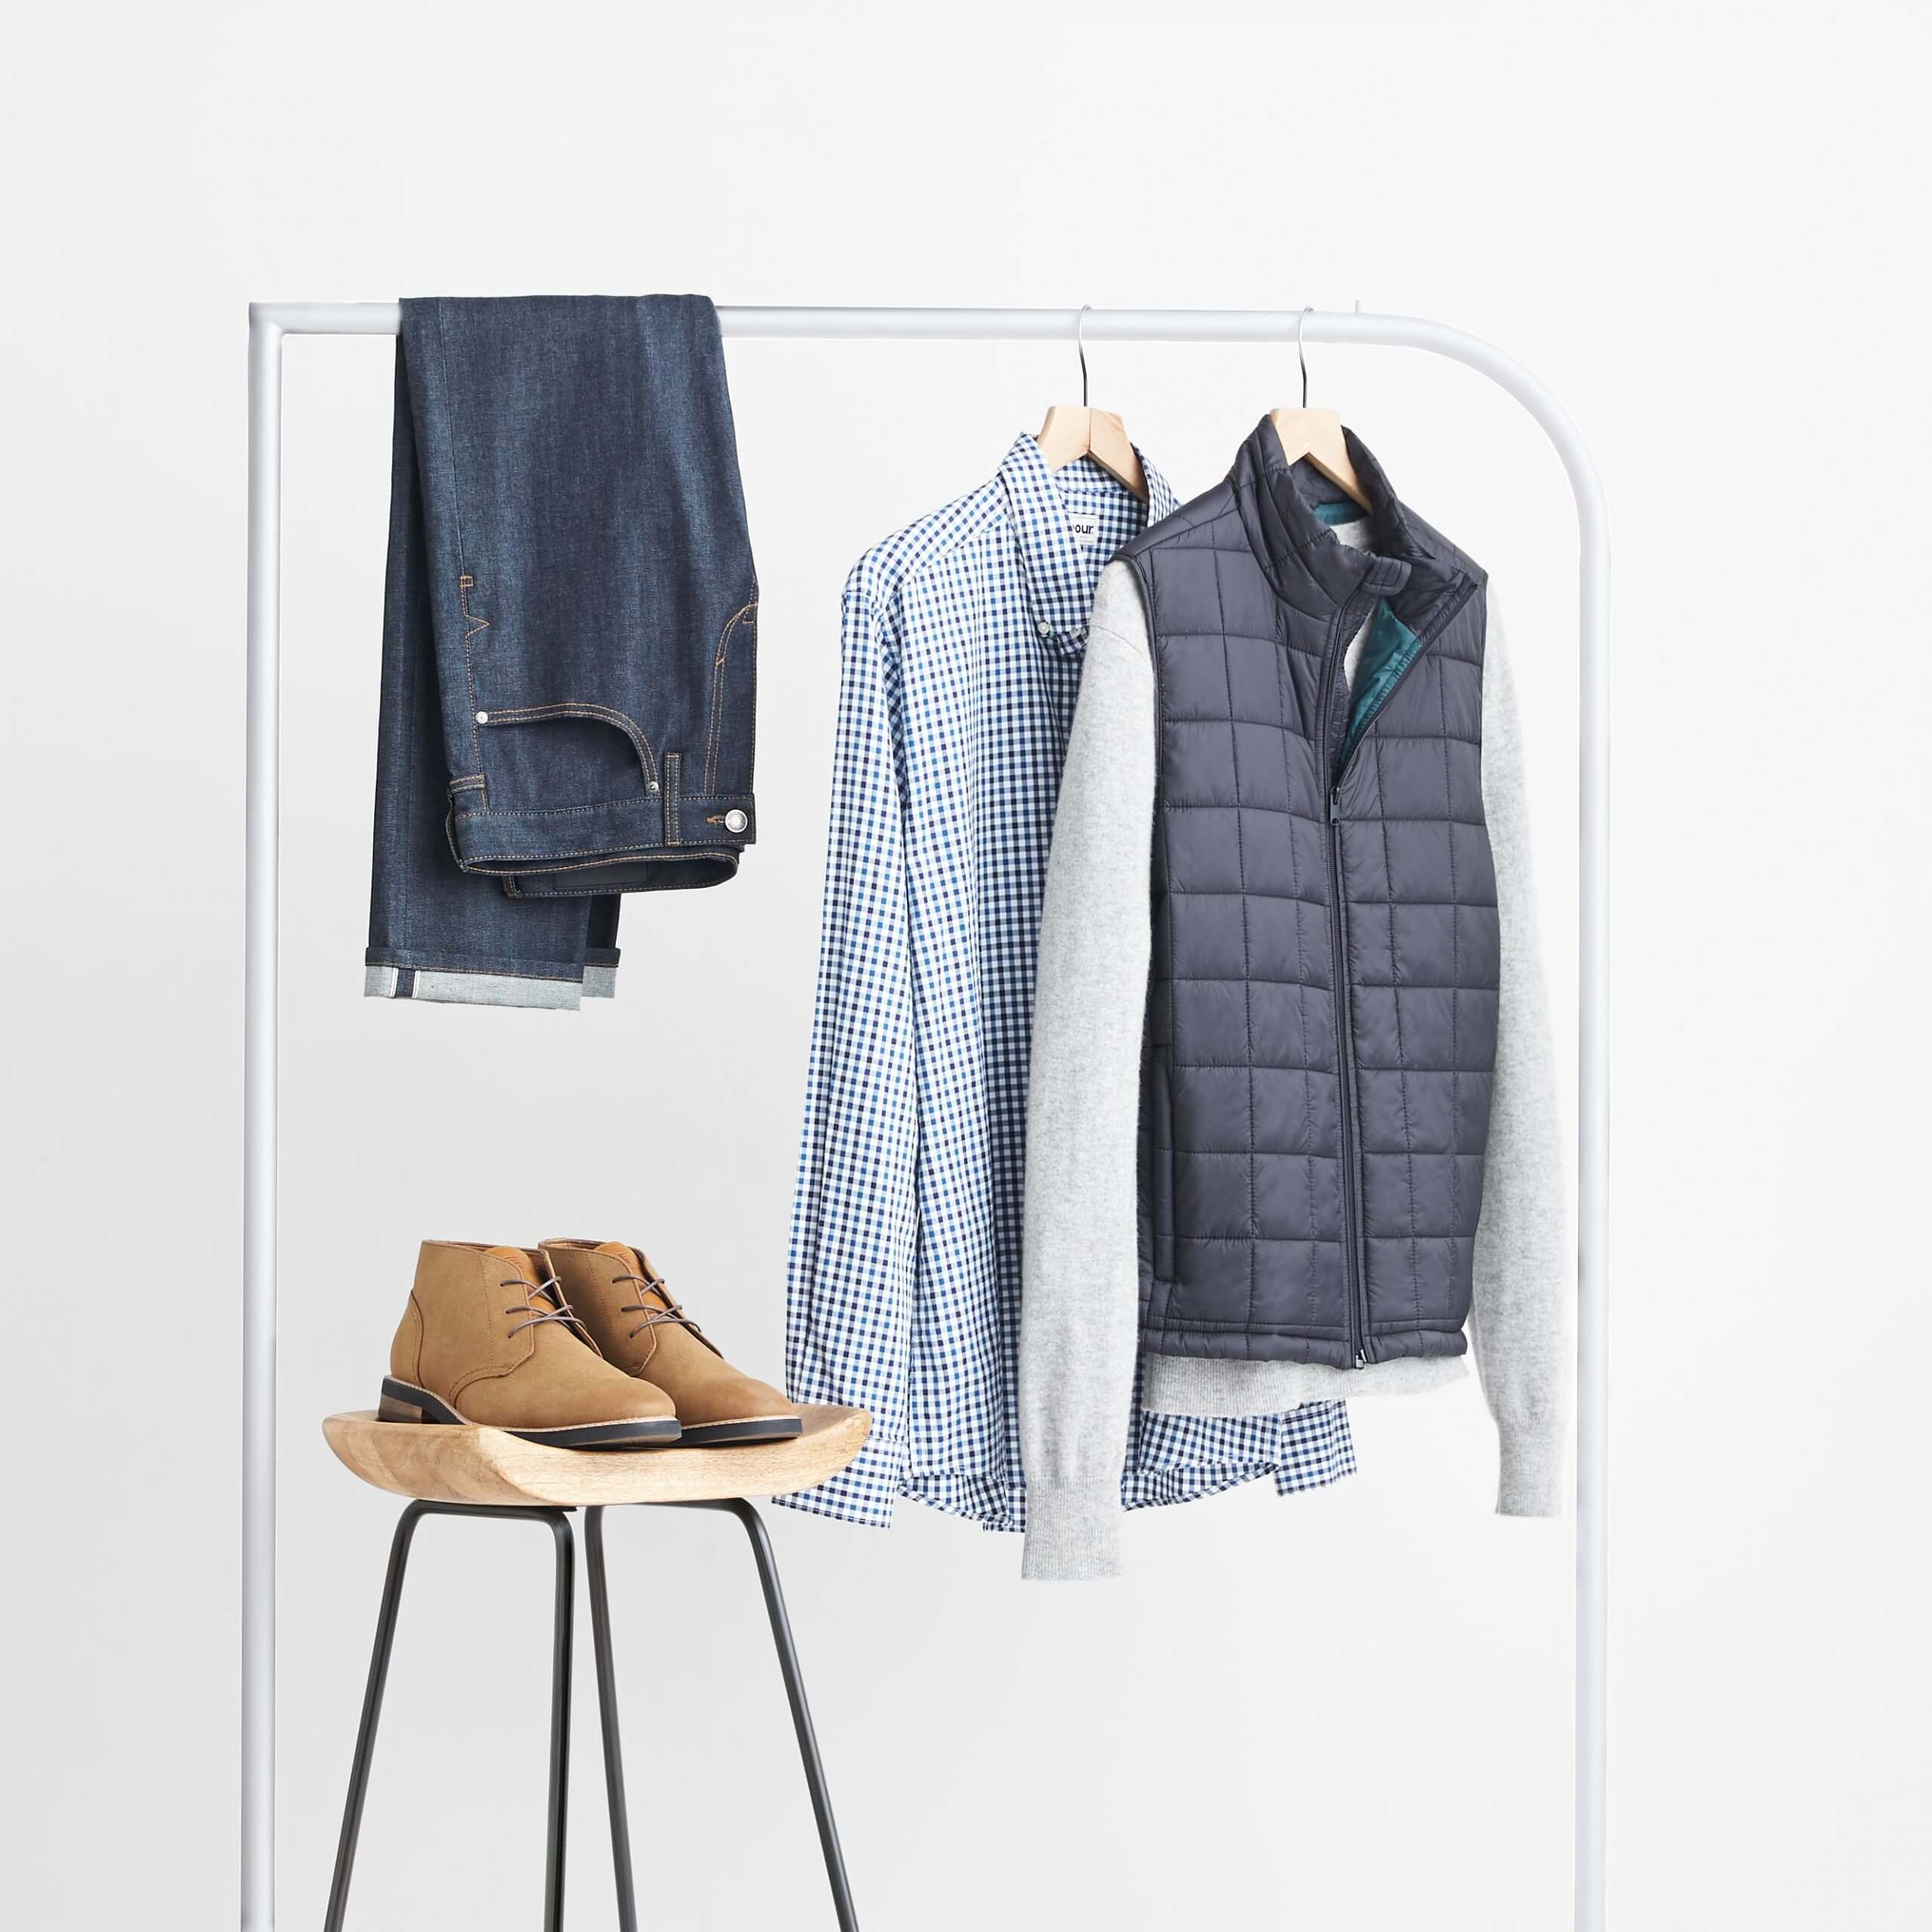 Stitch Fix Men's dark wash jeans, blue gingham button-down shirt, grey pullover and navy vest hanging on white rack next to brown chukkas on wooden stool.